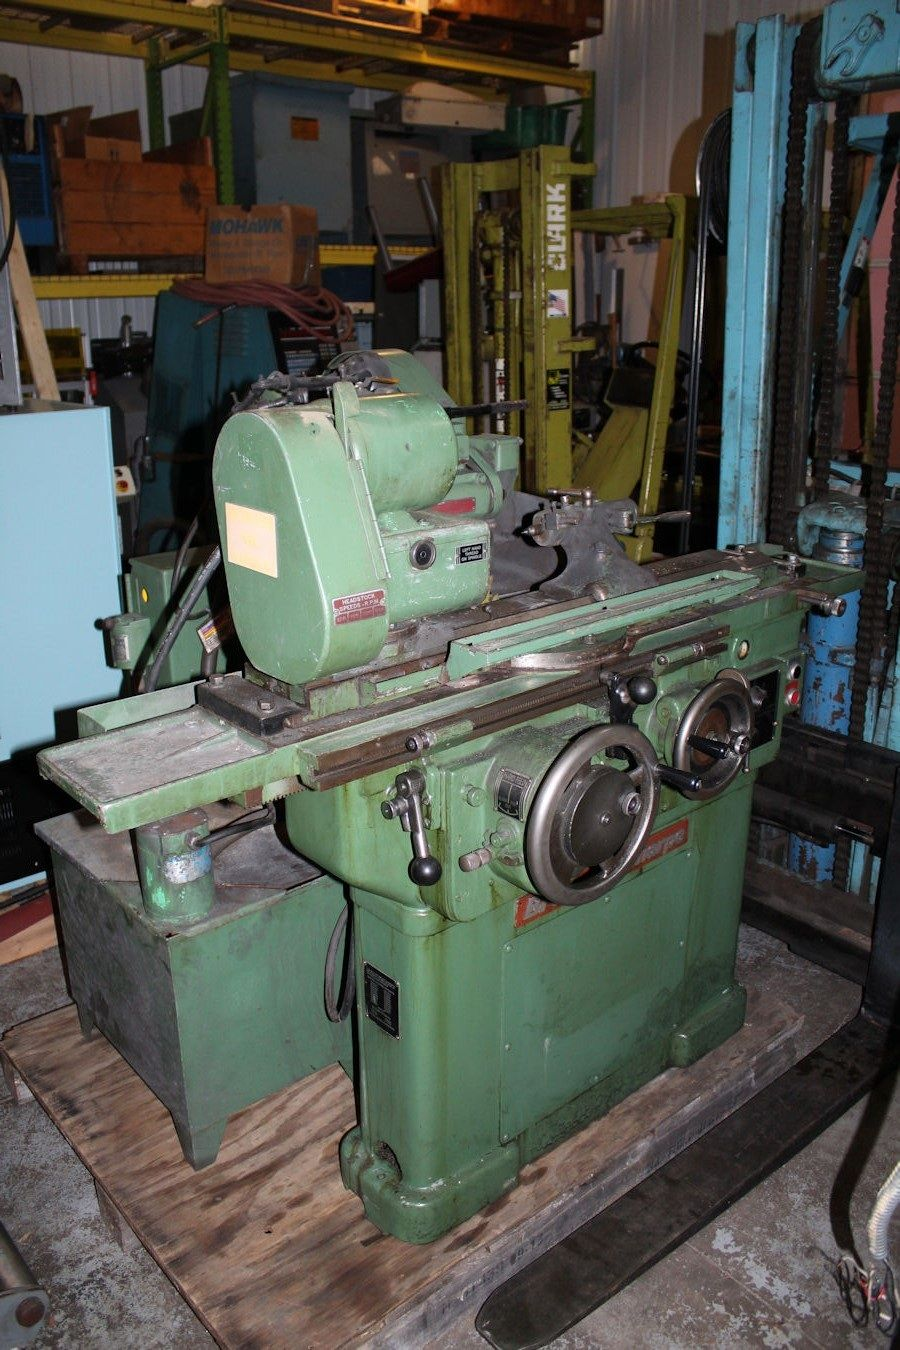 Universal Woodworking Machine For Sale Check More At Https Glennbeckreport Com Free Woodworking Plans